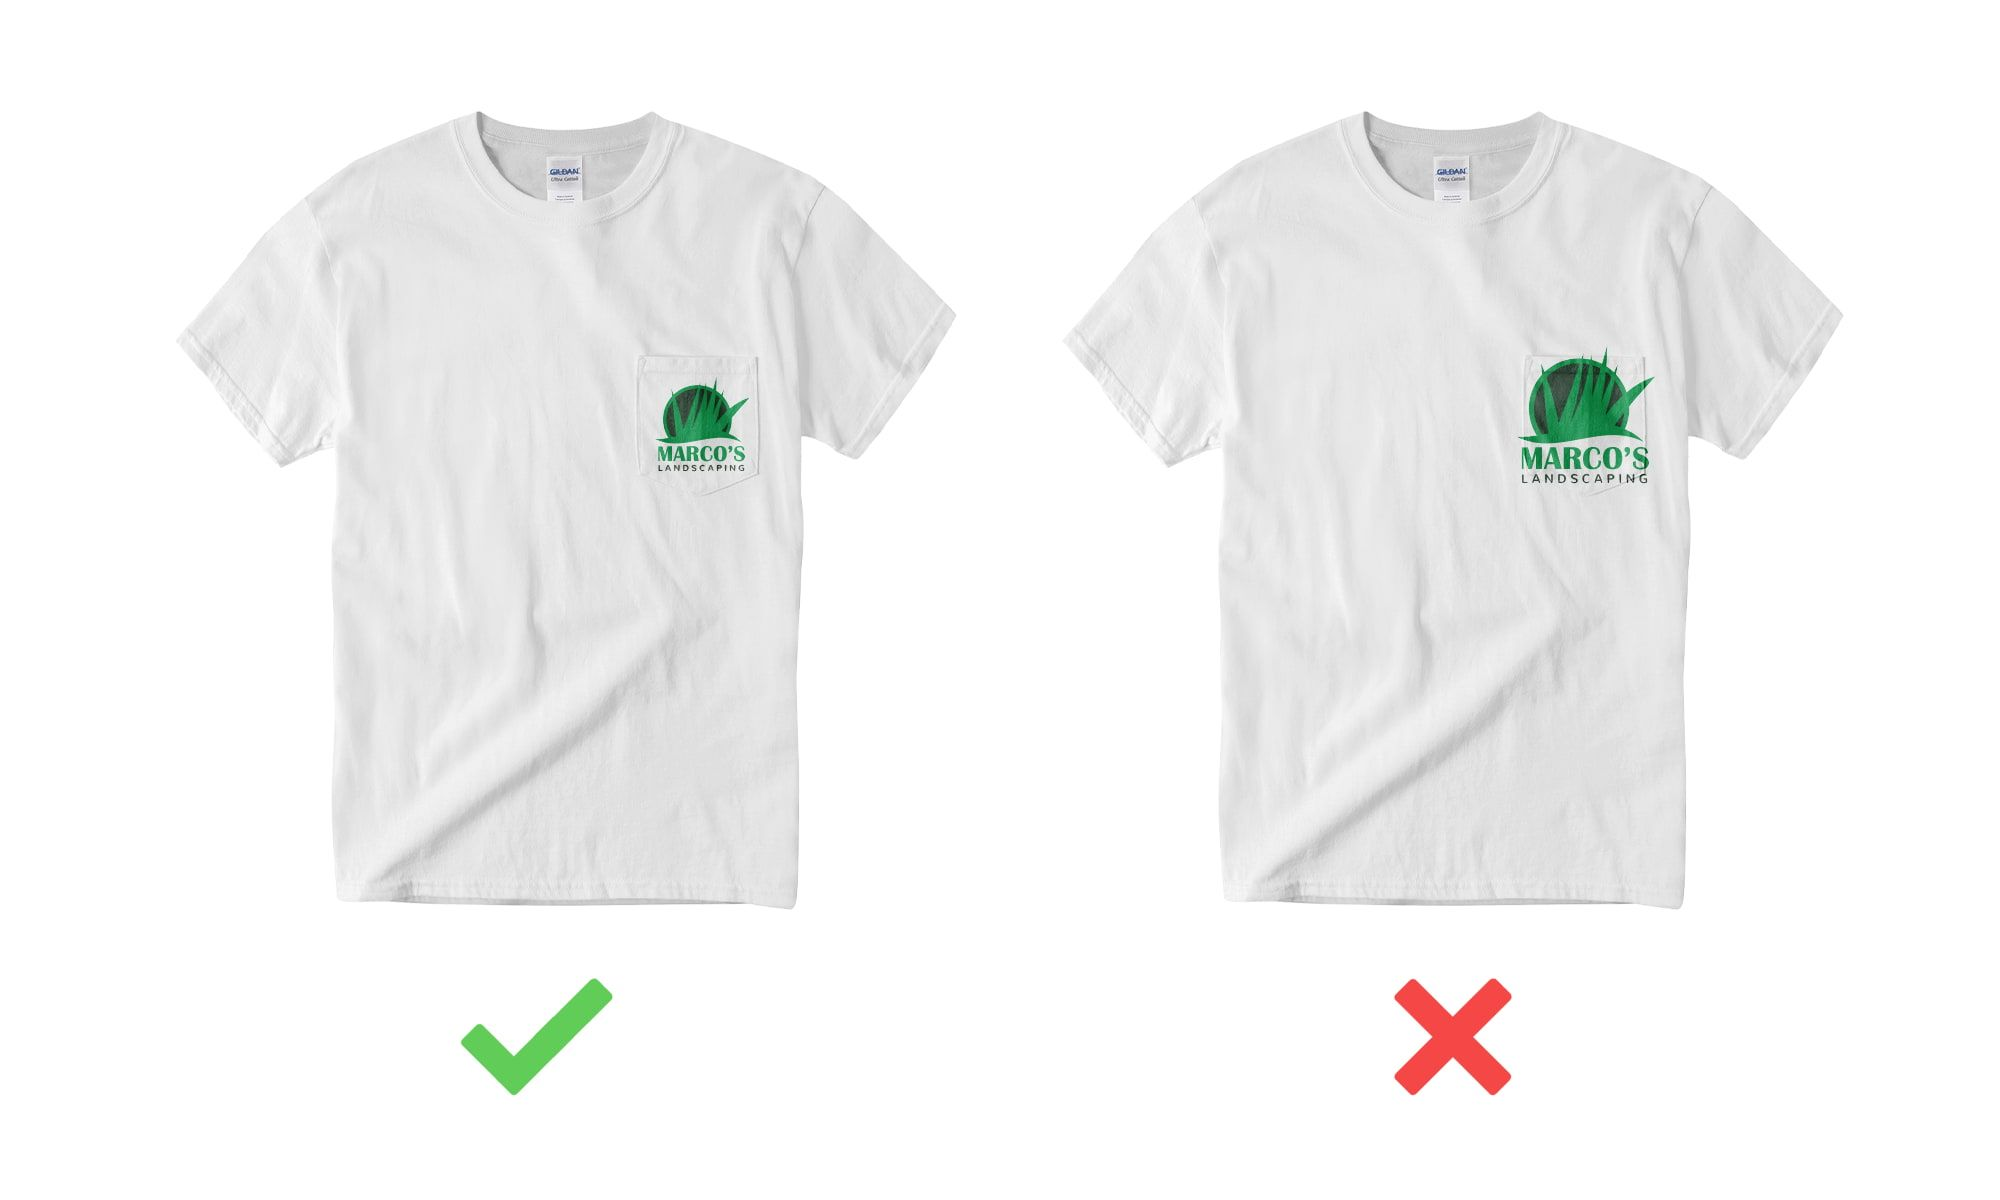 Example of t-shirt design when designing on a pocket.